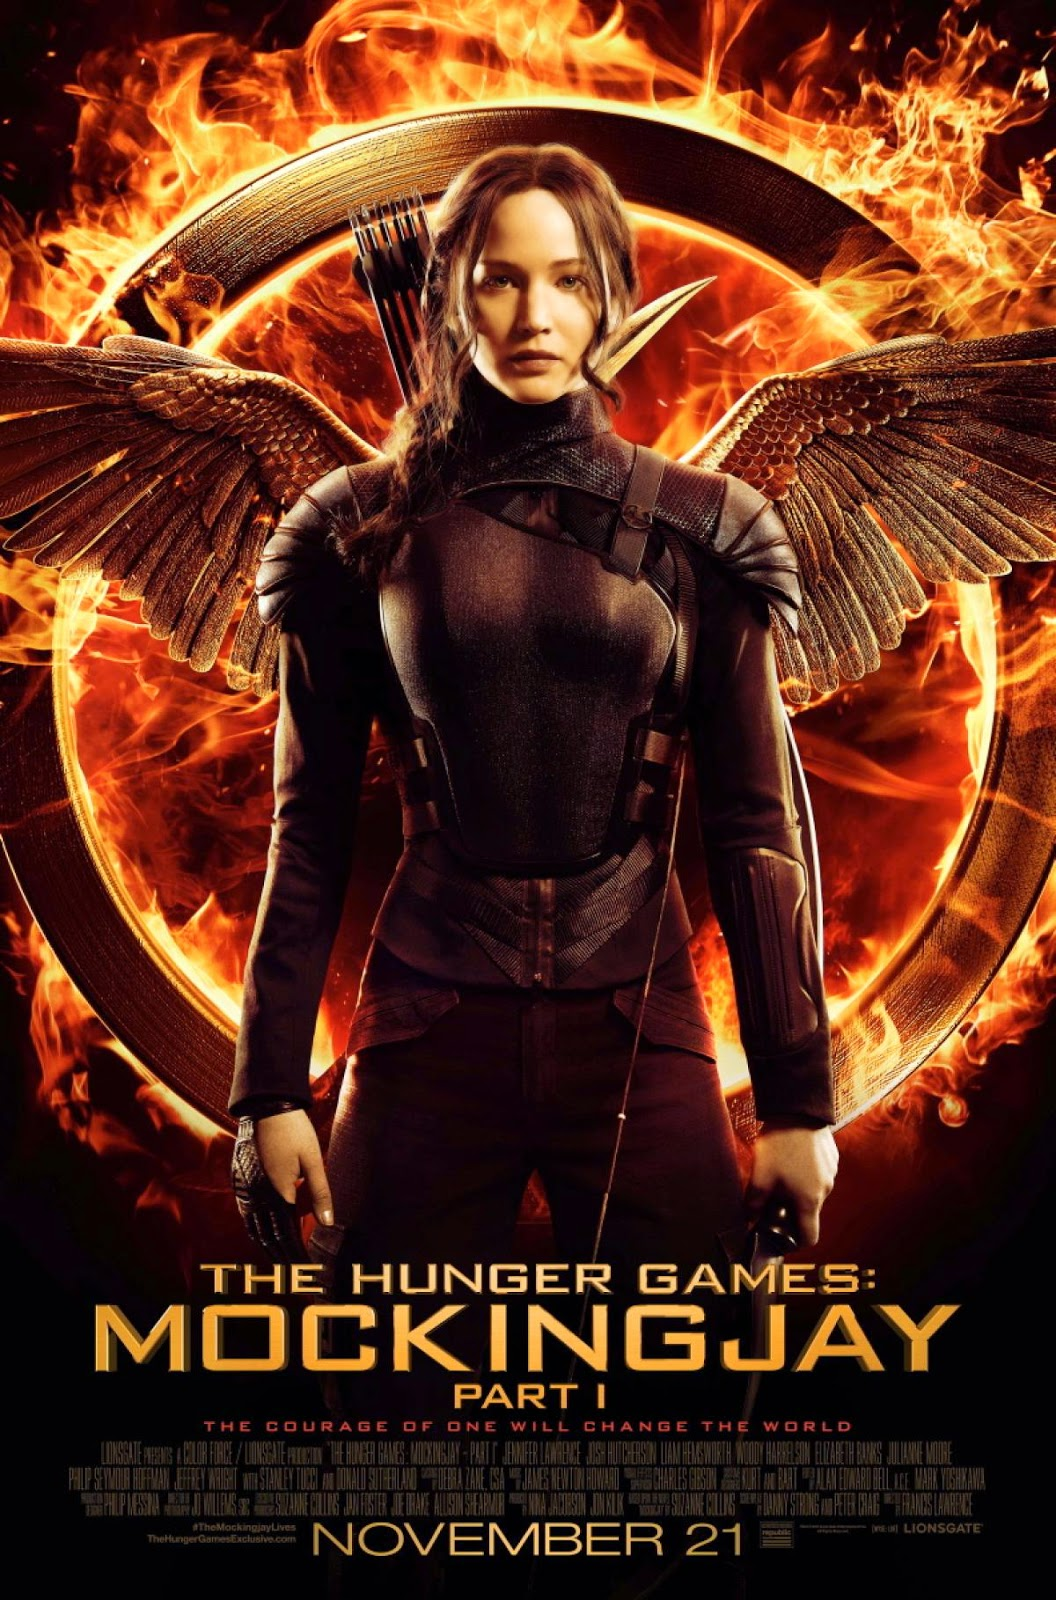 The Hunger Games: Mockingjay: Part 1 - Movie Poster